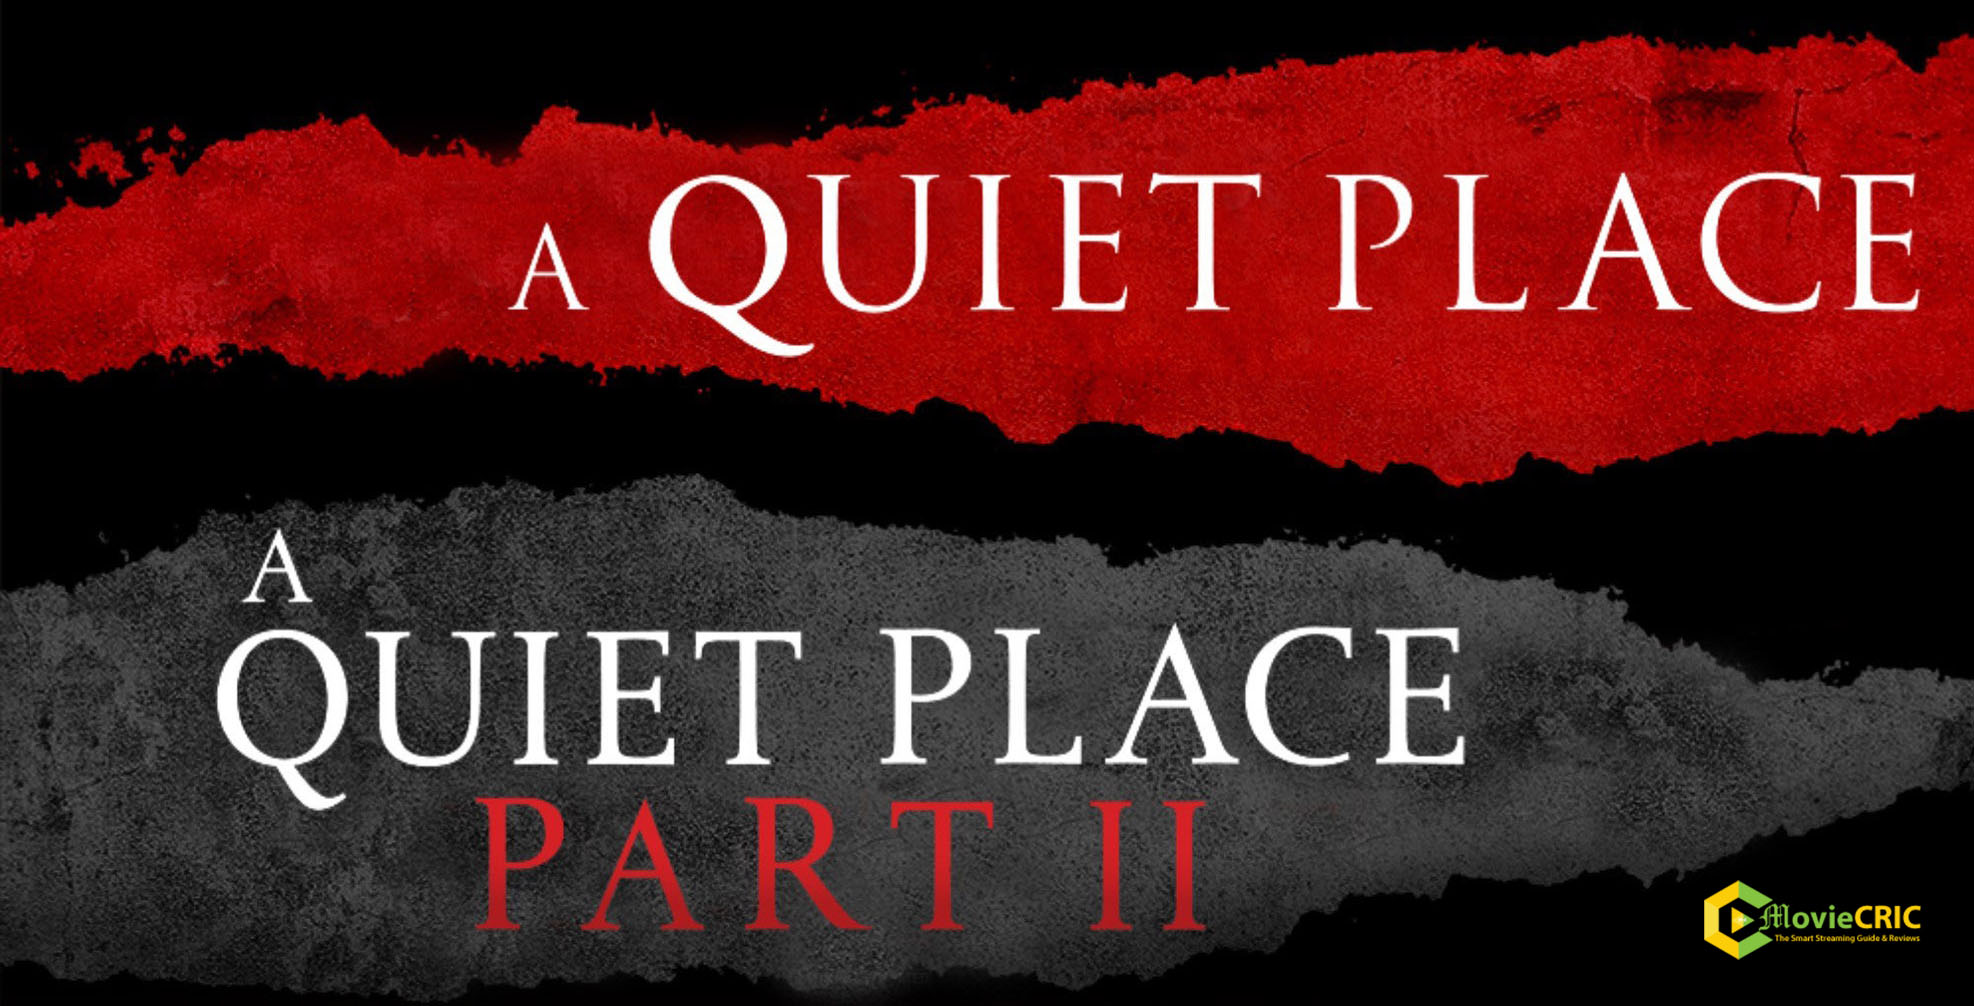 Official A Quiet Place Part II Streaming: How to Stream A Quiet Place Part II online for Free?